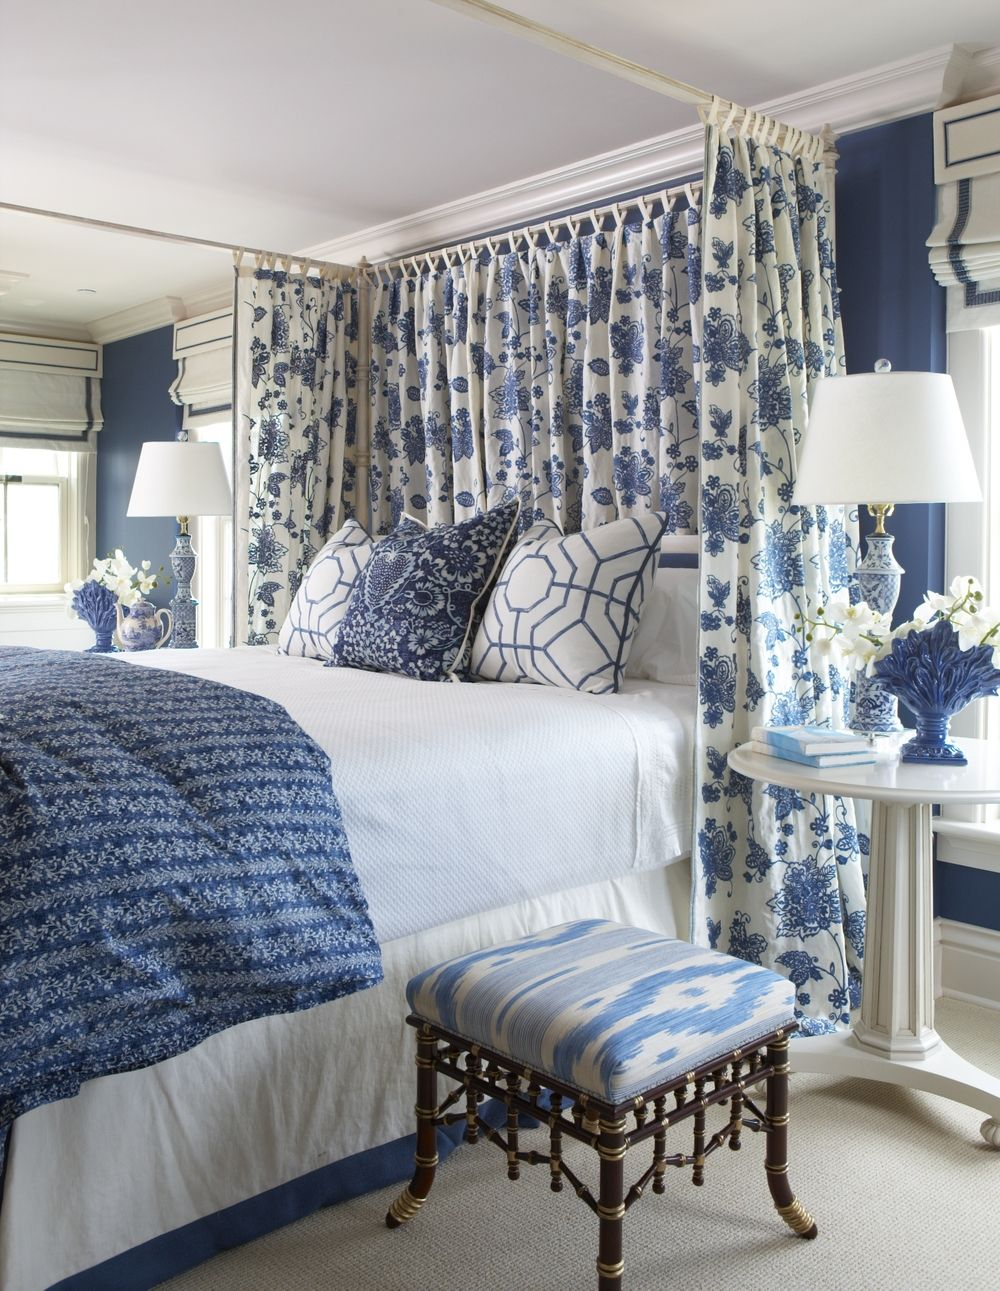 Blue And White Master Bedroom With Floral Drapes For A French